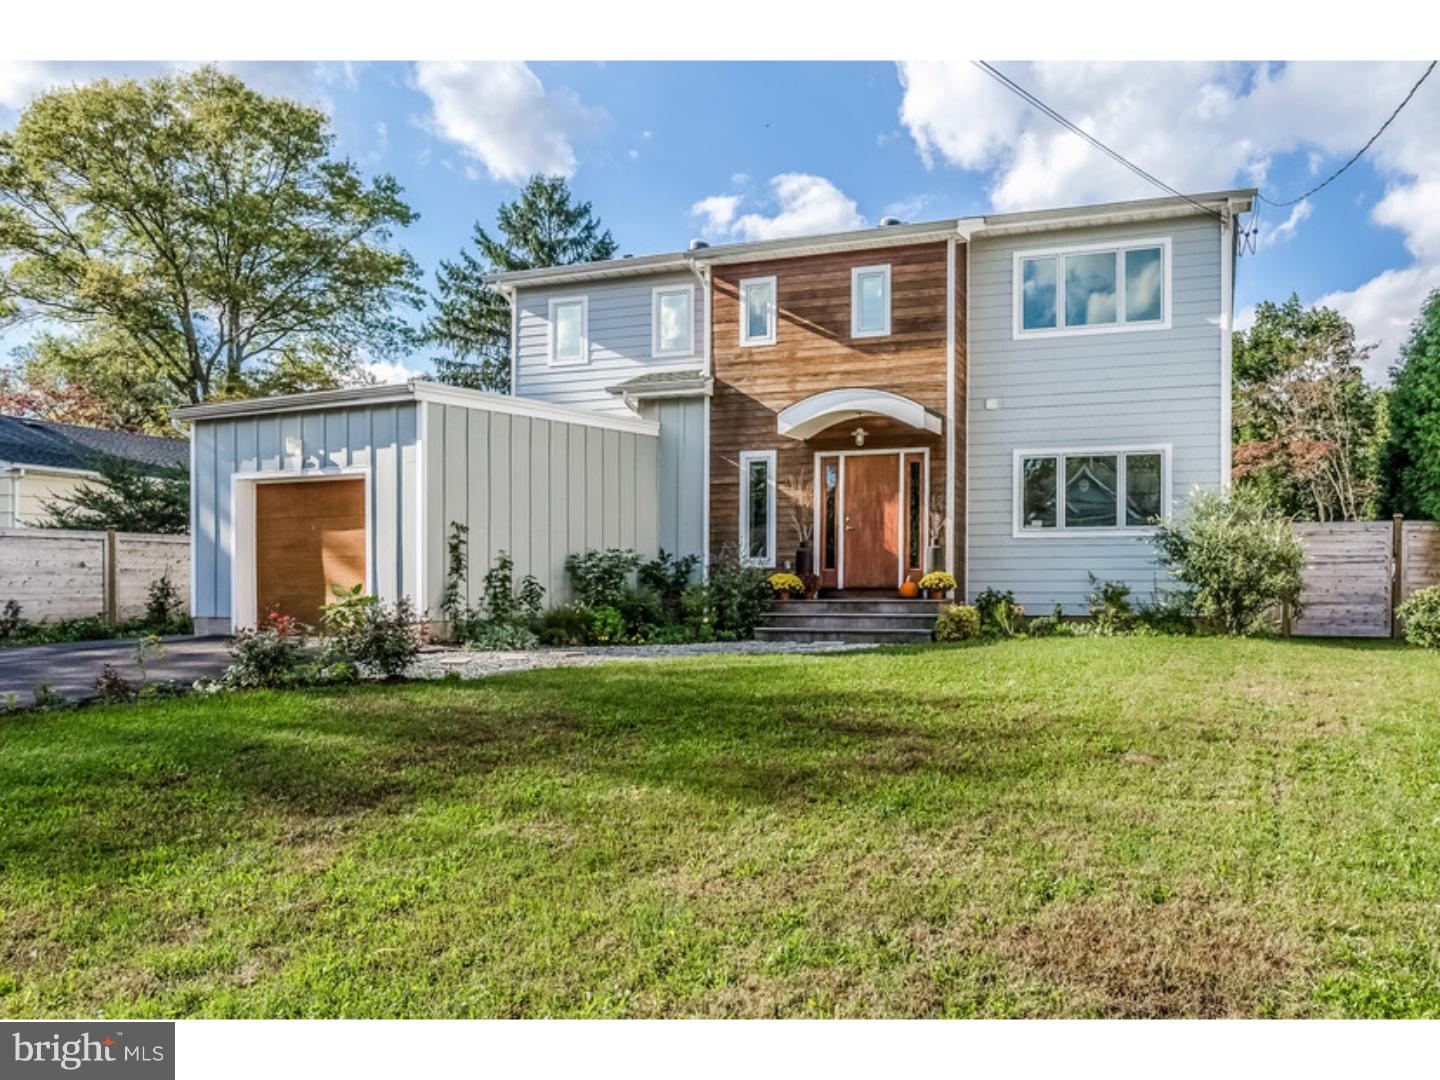 Property for Sale at 48 DORANN Avenue Princeton, New Jersey 08540 United States